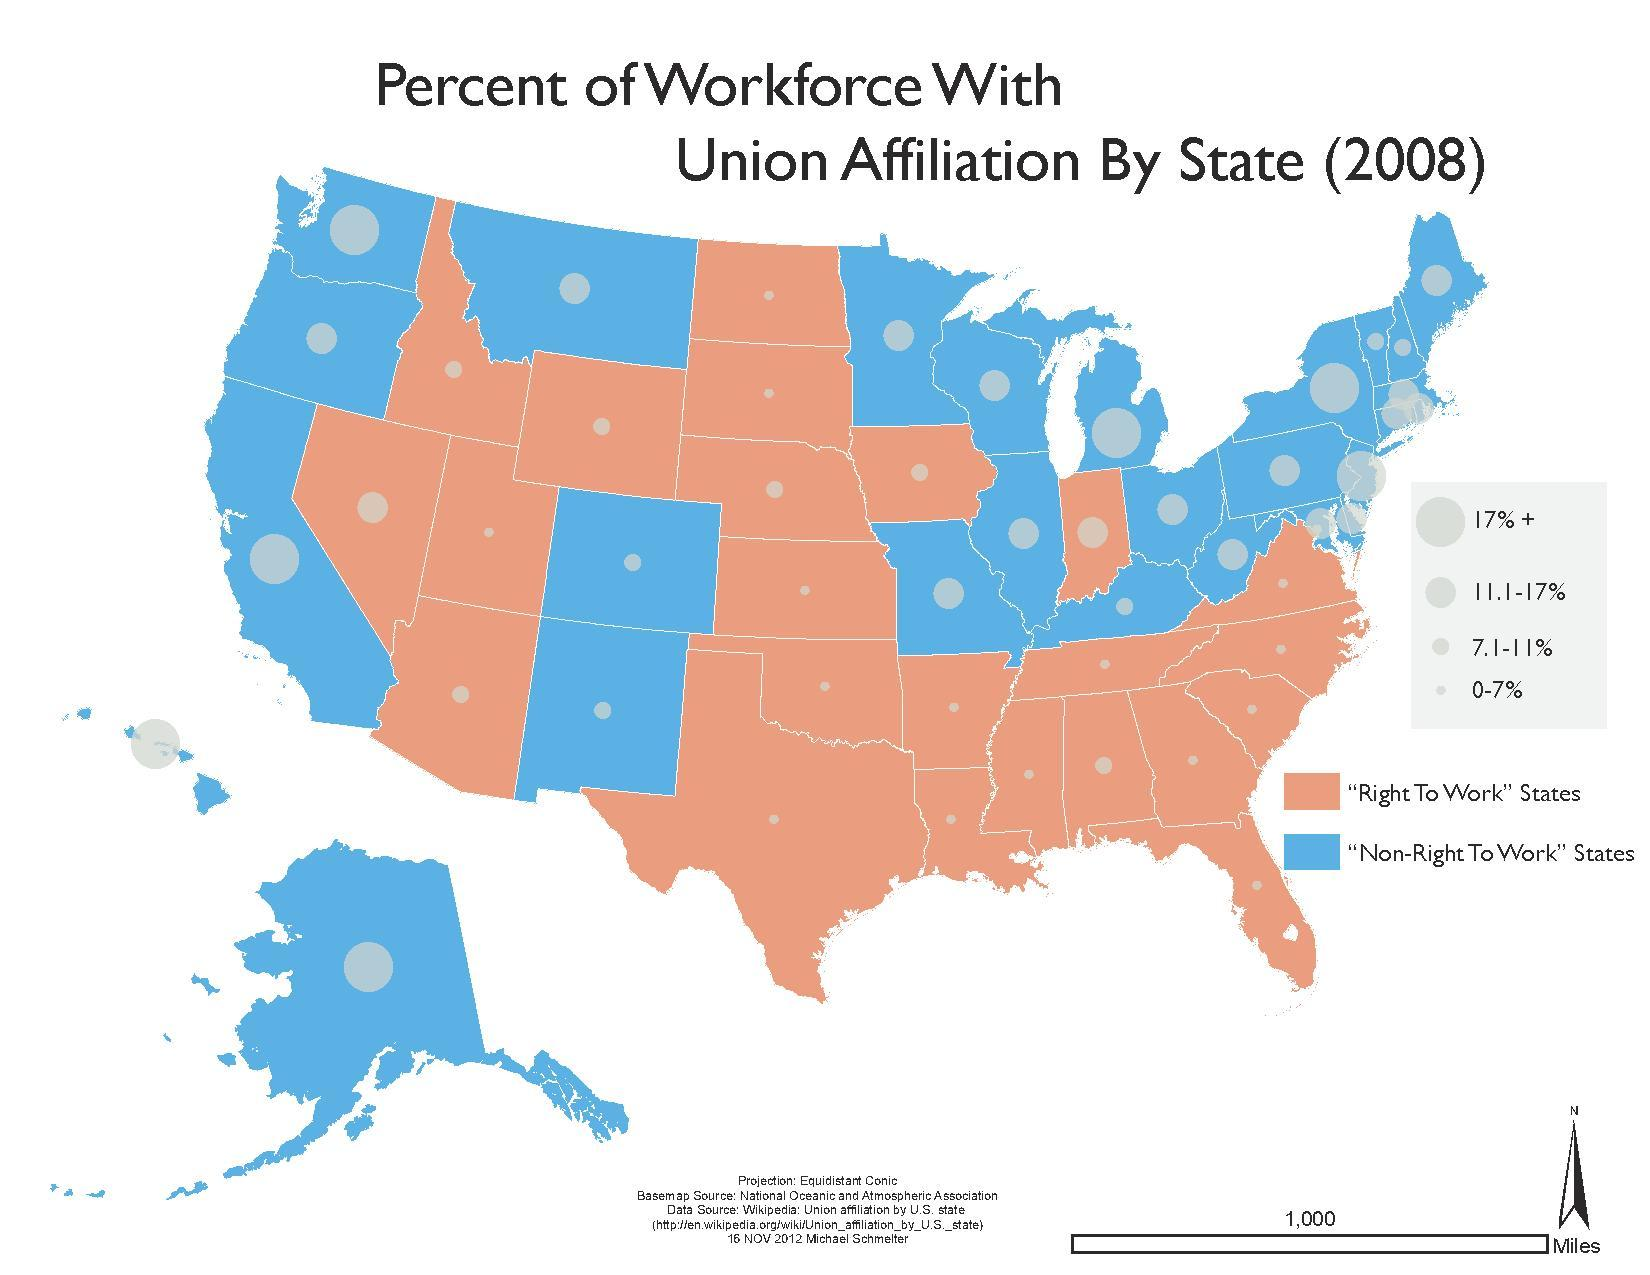 Right To Work States Vs Union States Map.File Union Affiliation By State Vs Right To Work Pdf Wikimedia